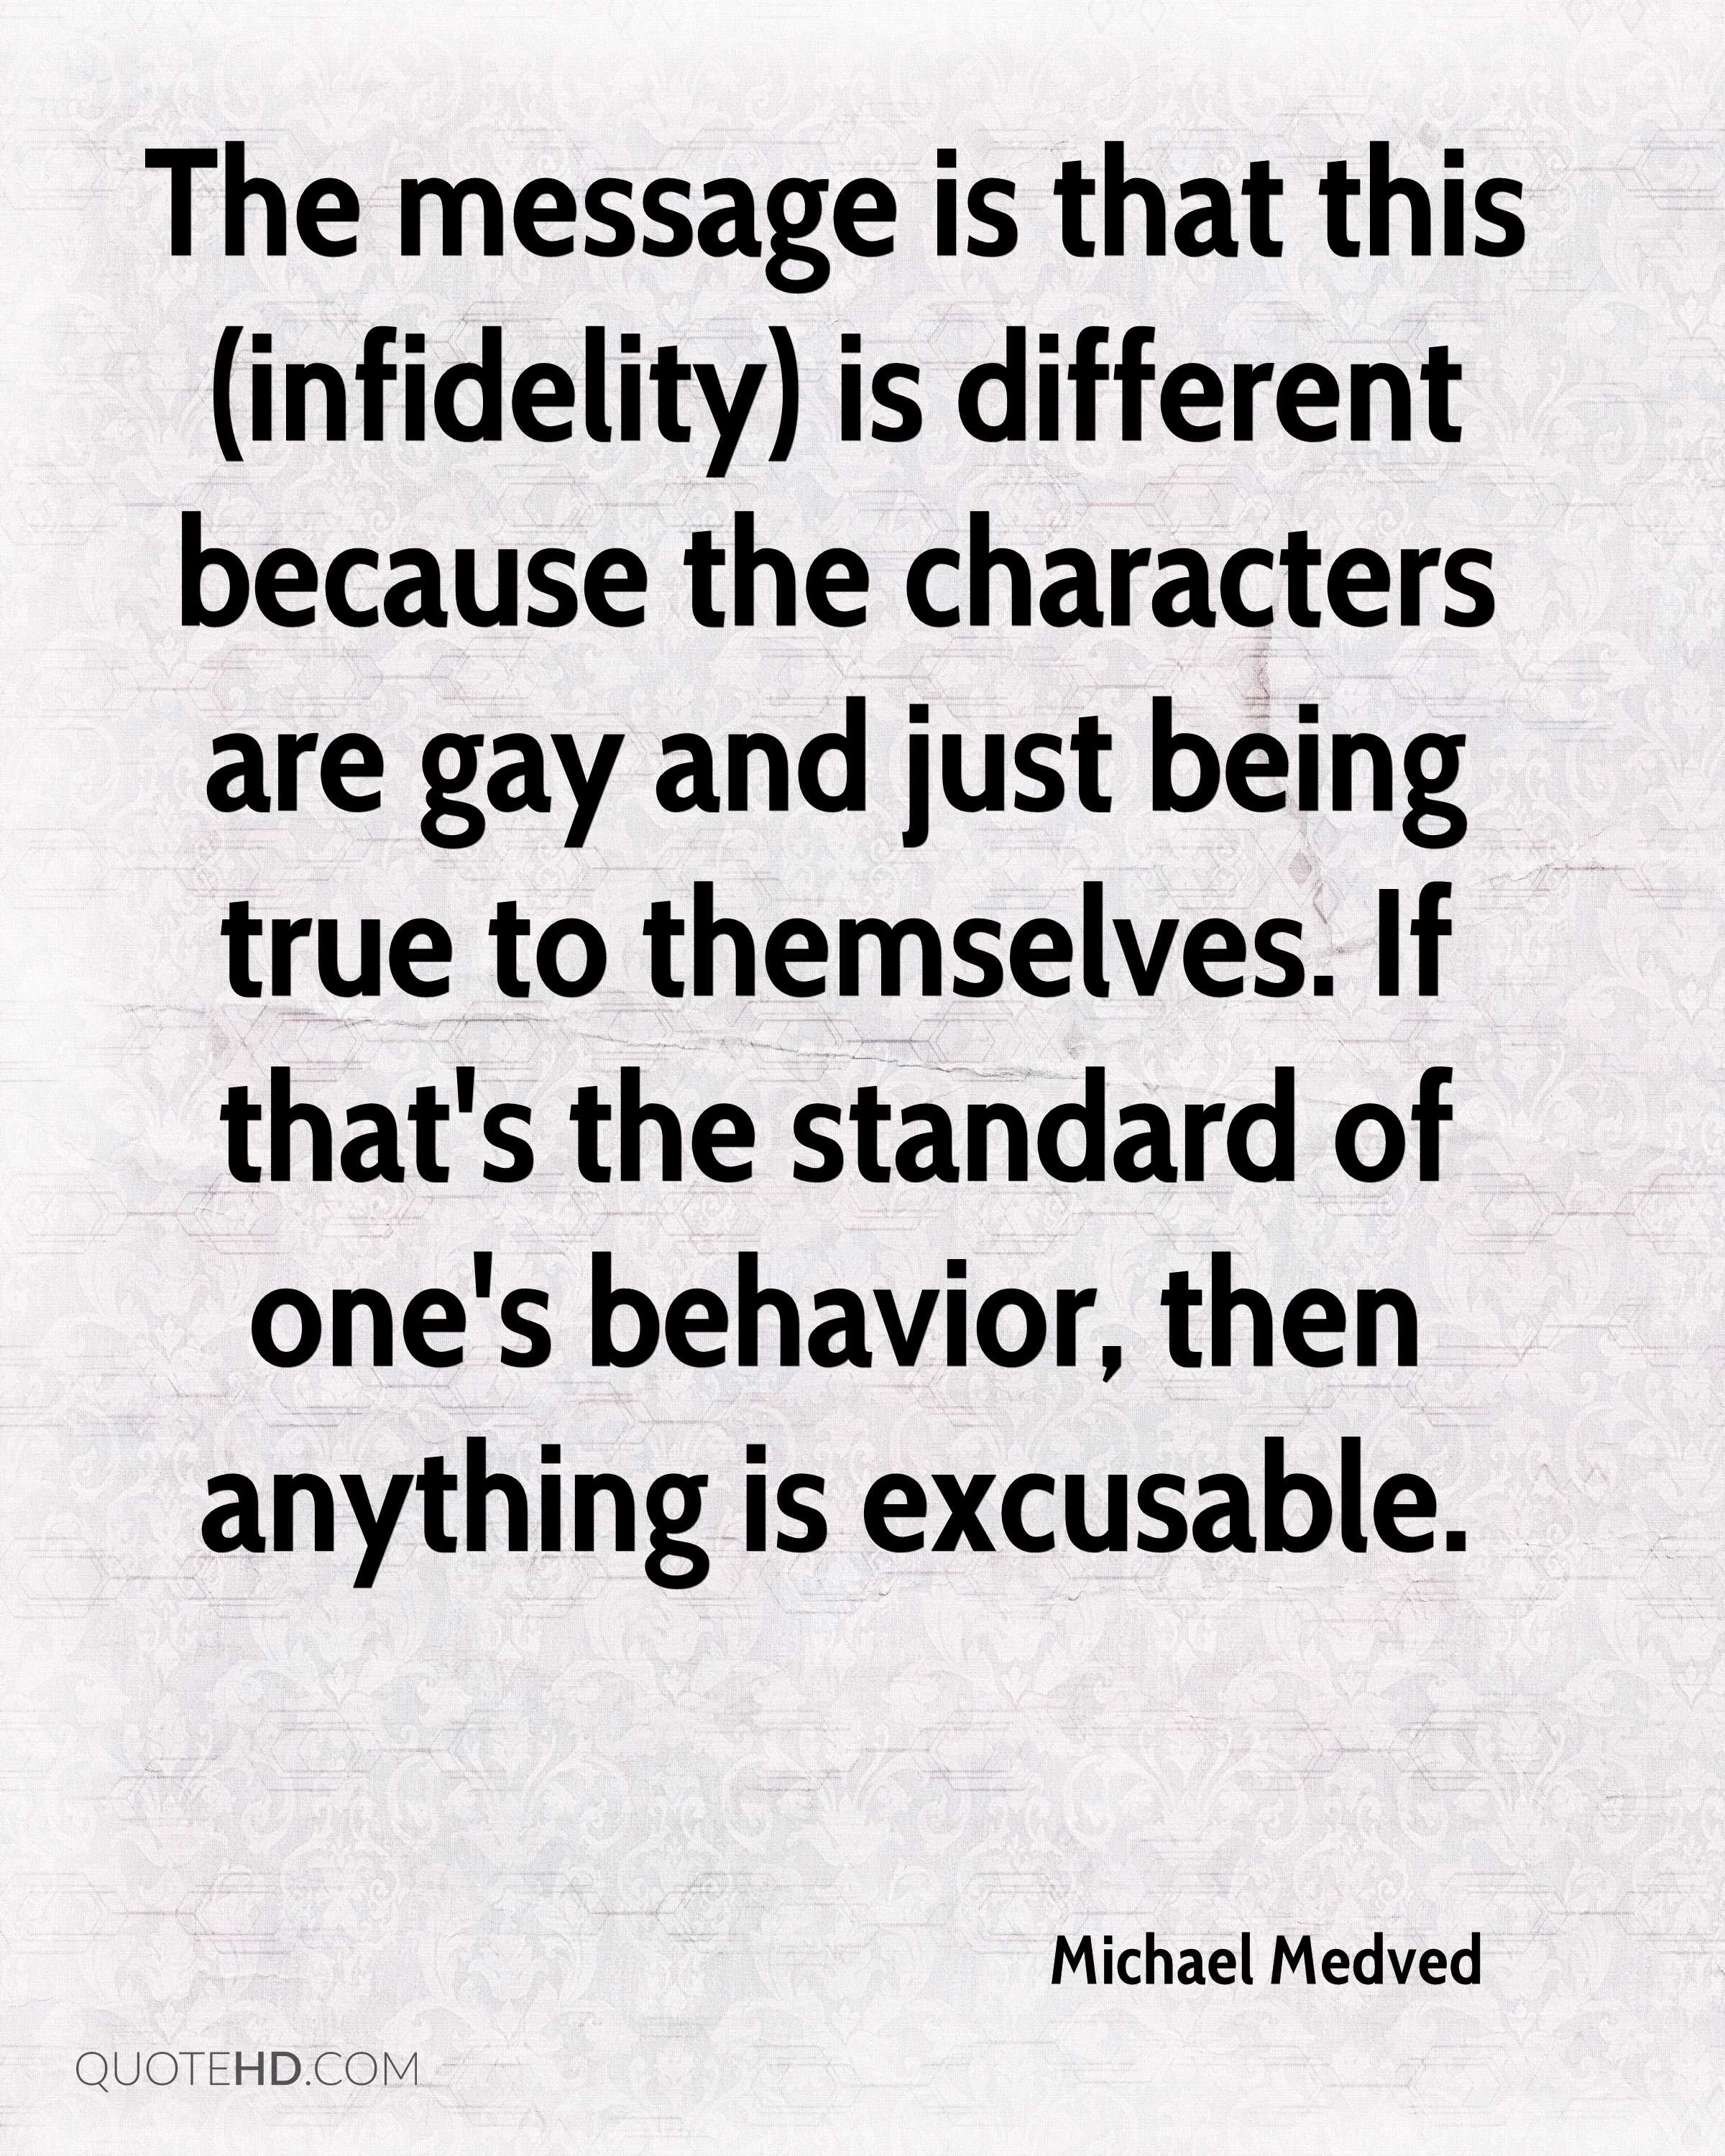 The message is that this (infidelity) is different because the characters are gay and just being true to themselves. If that's the standard of one's behavior, then anything is excusable.